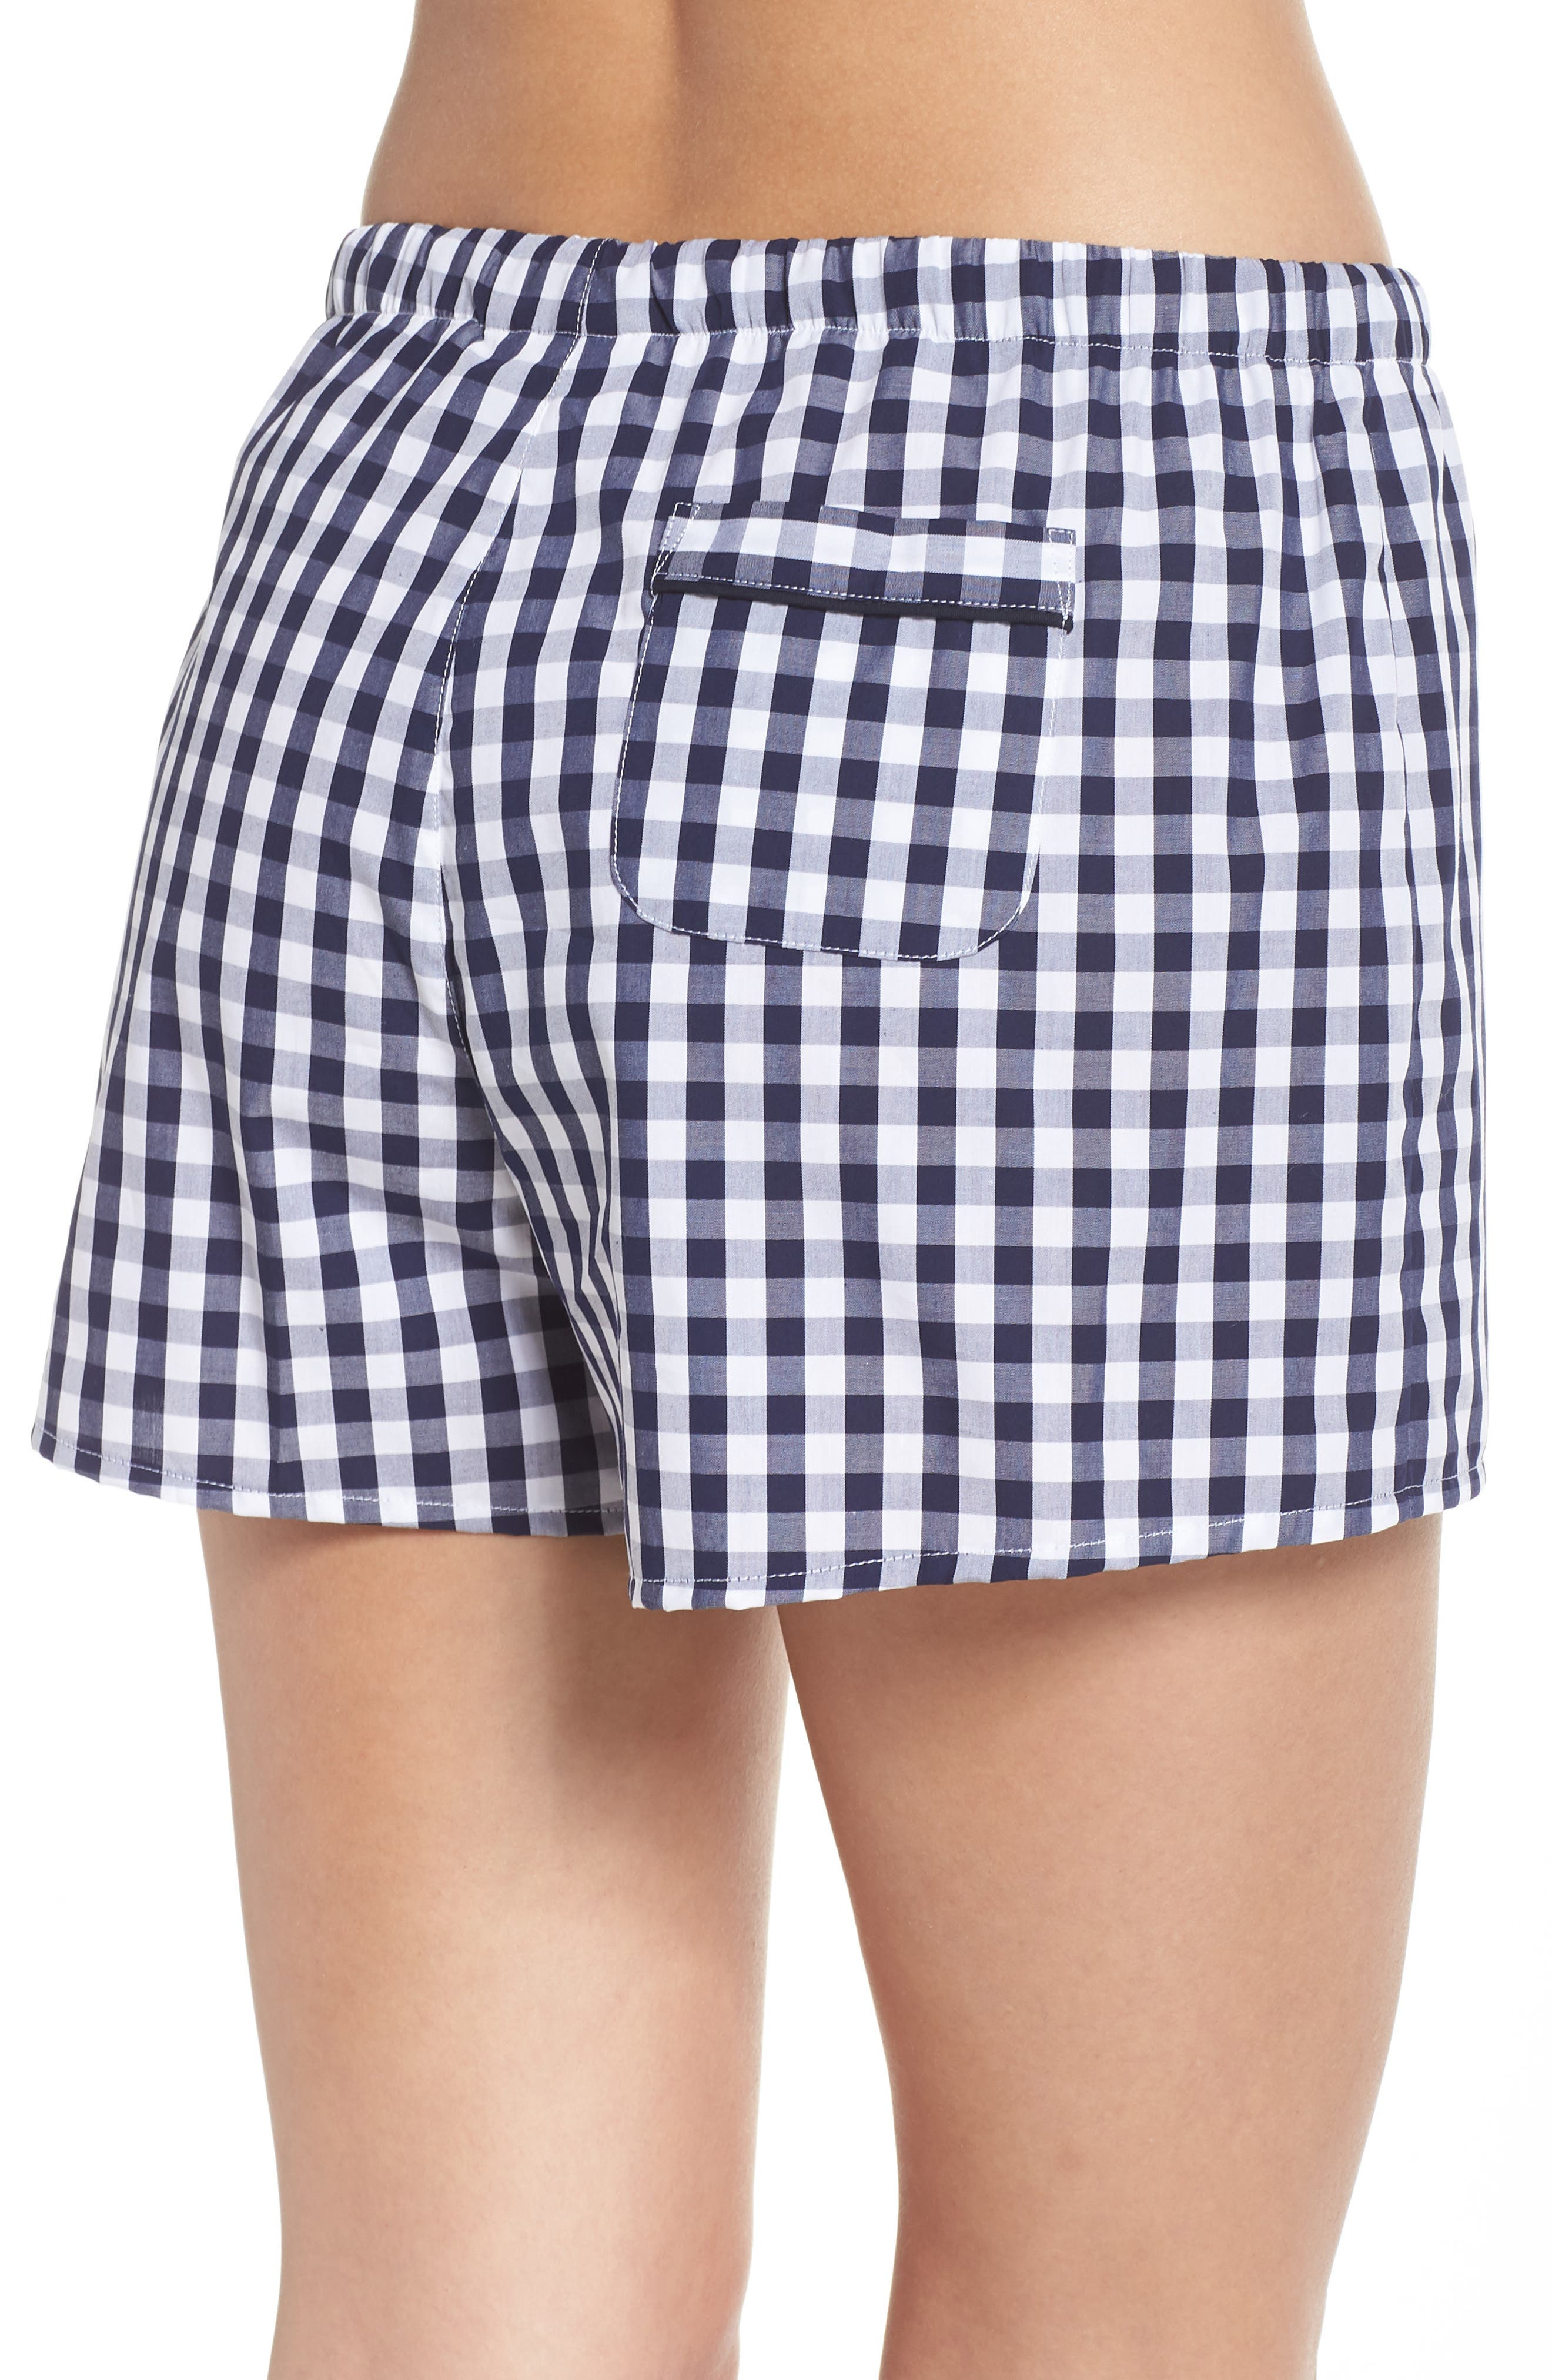 Paloma Women's Pajama Shorts,                             Alternate thumbnail 3, color,                             LARGE GINGHAM BLUE